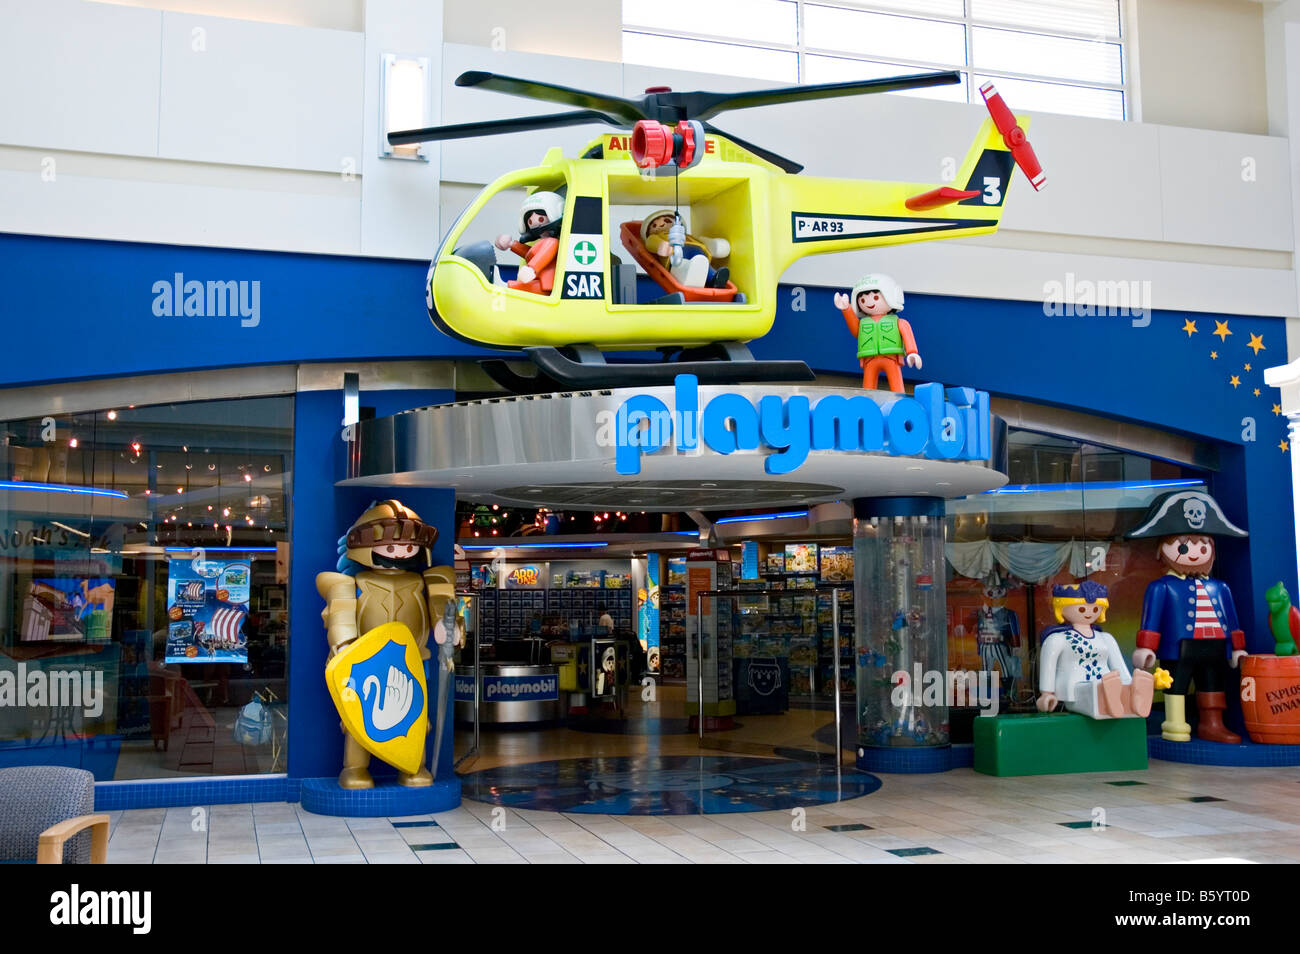 Playmobil store frontage - Stock Image